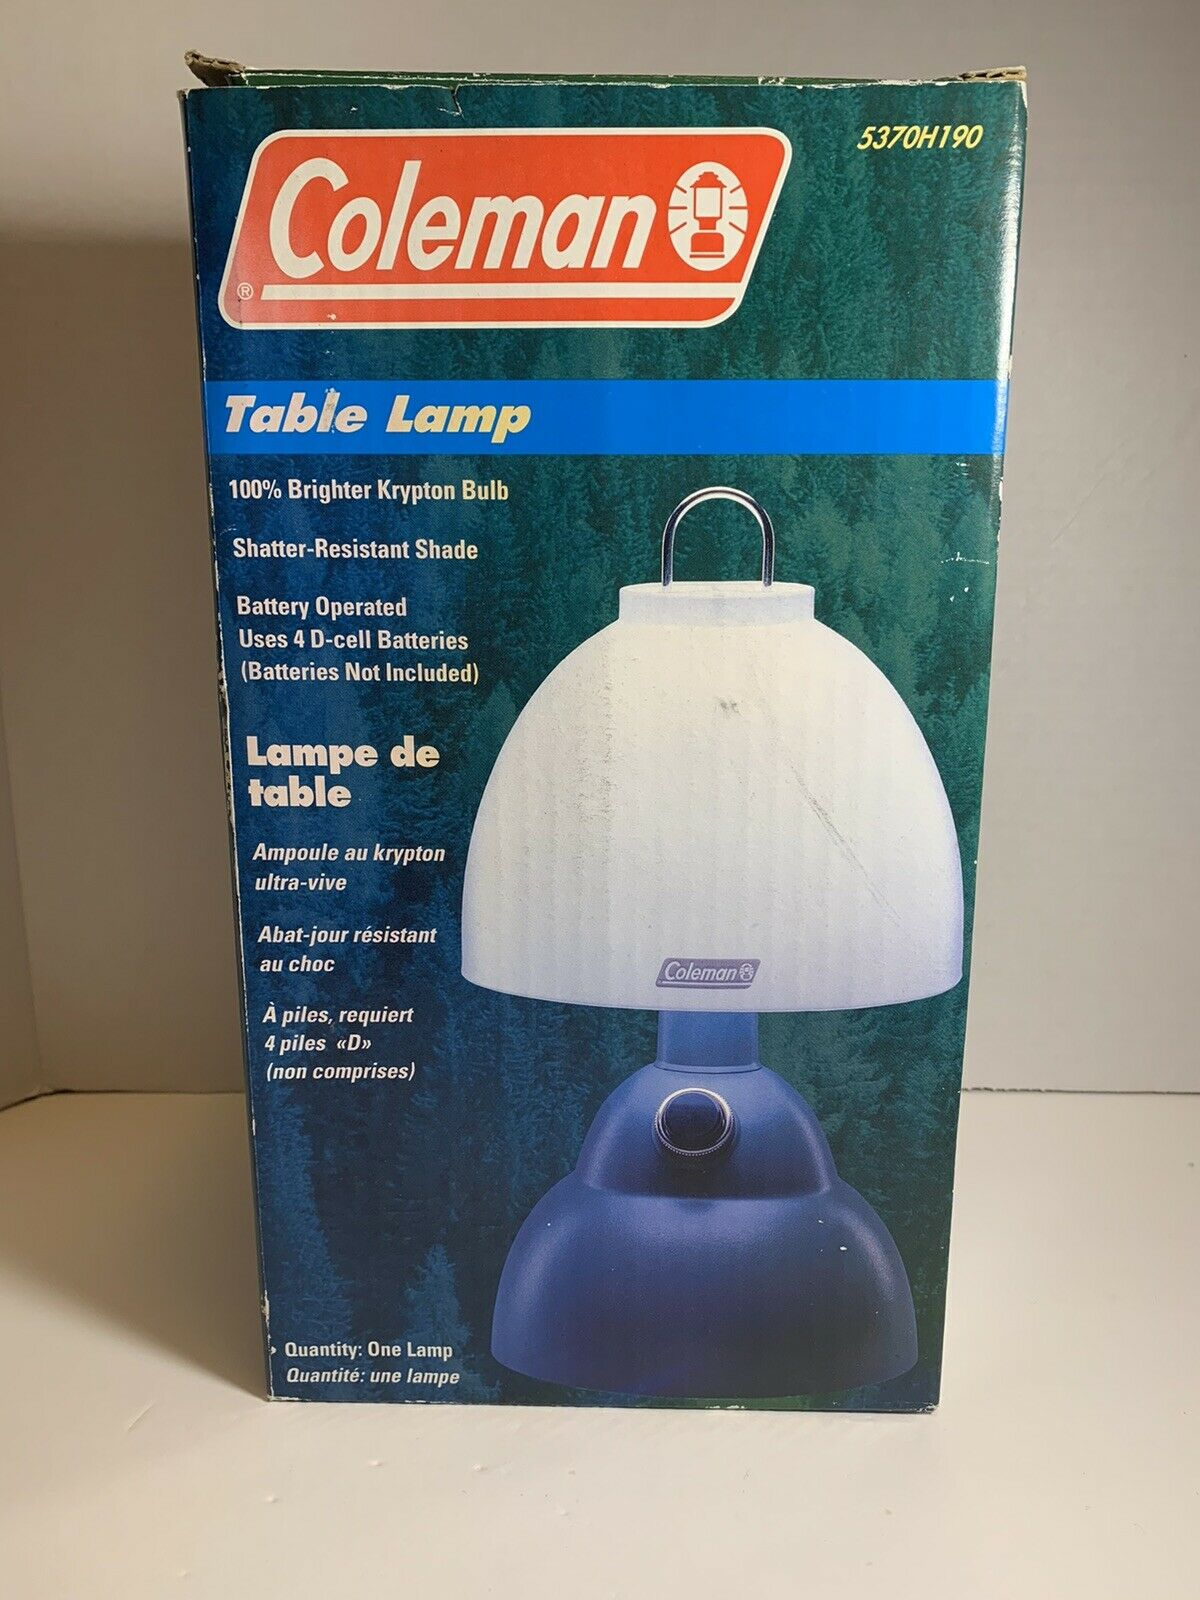 Picture of: Coleman Camping Table Lamp Battery Operated Krypton Bulb 5370h190 For Sale Online Ebay